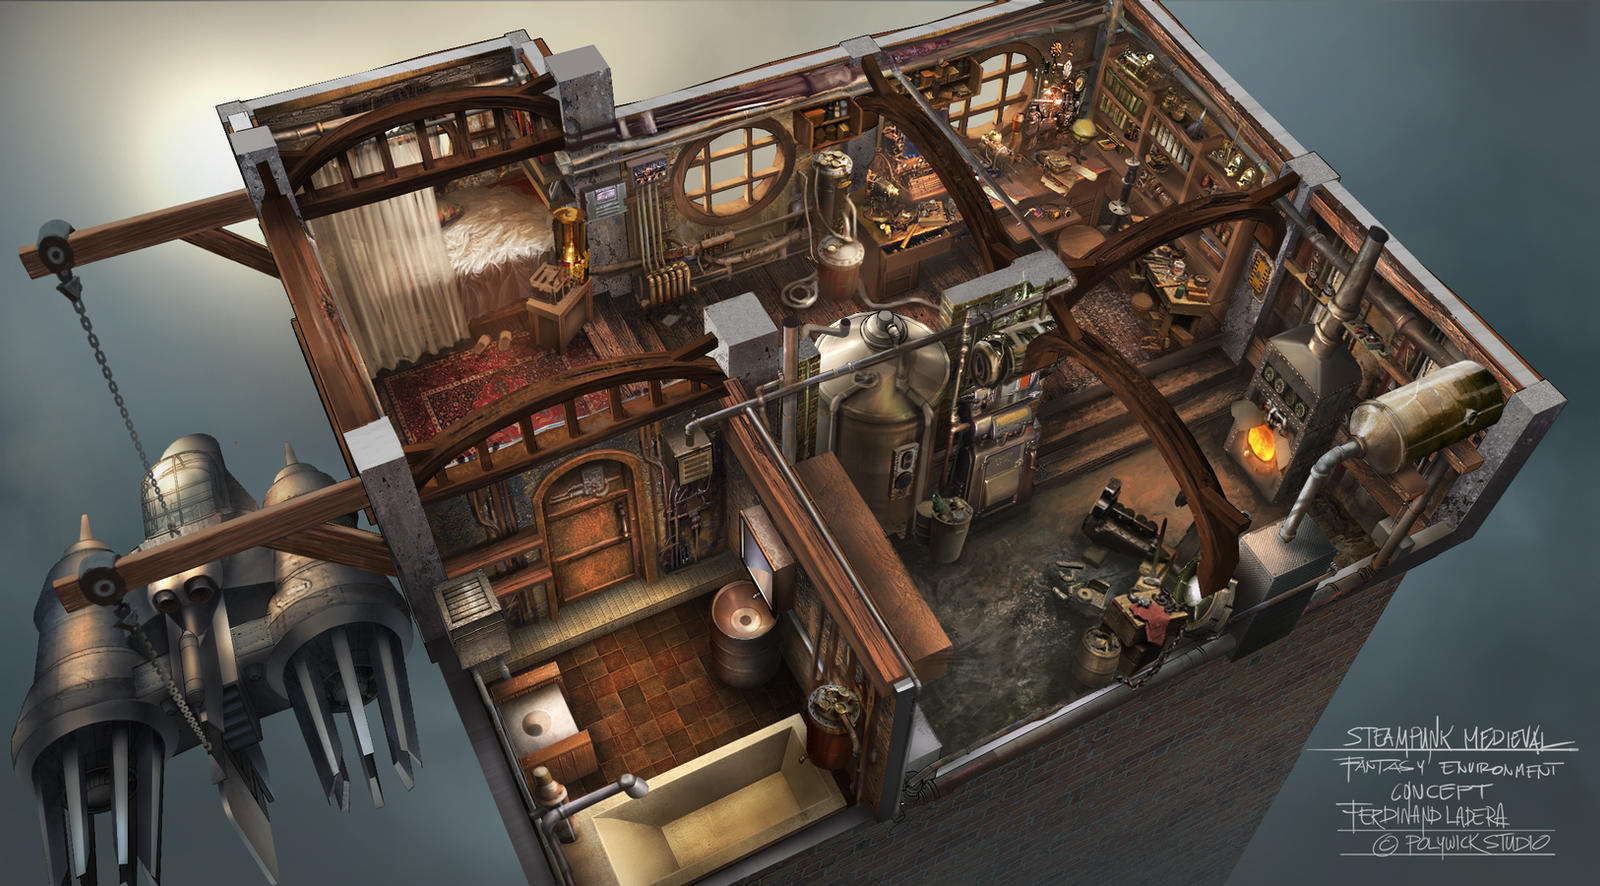 Steampunk interior by ferdinandladera on deviantart Steampunk interior